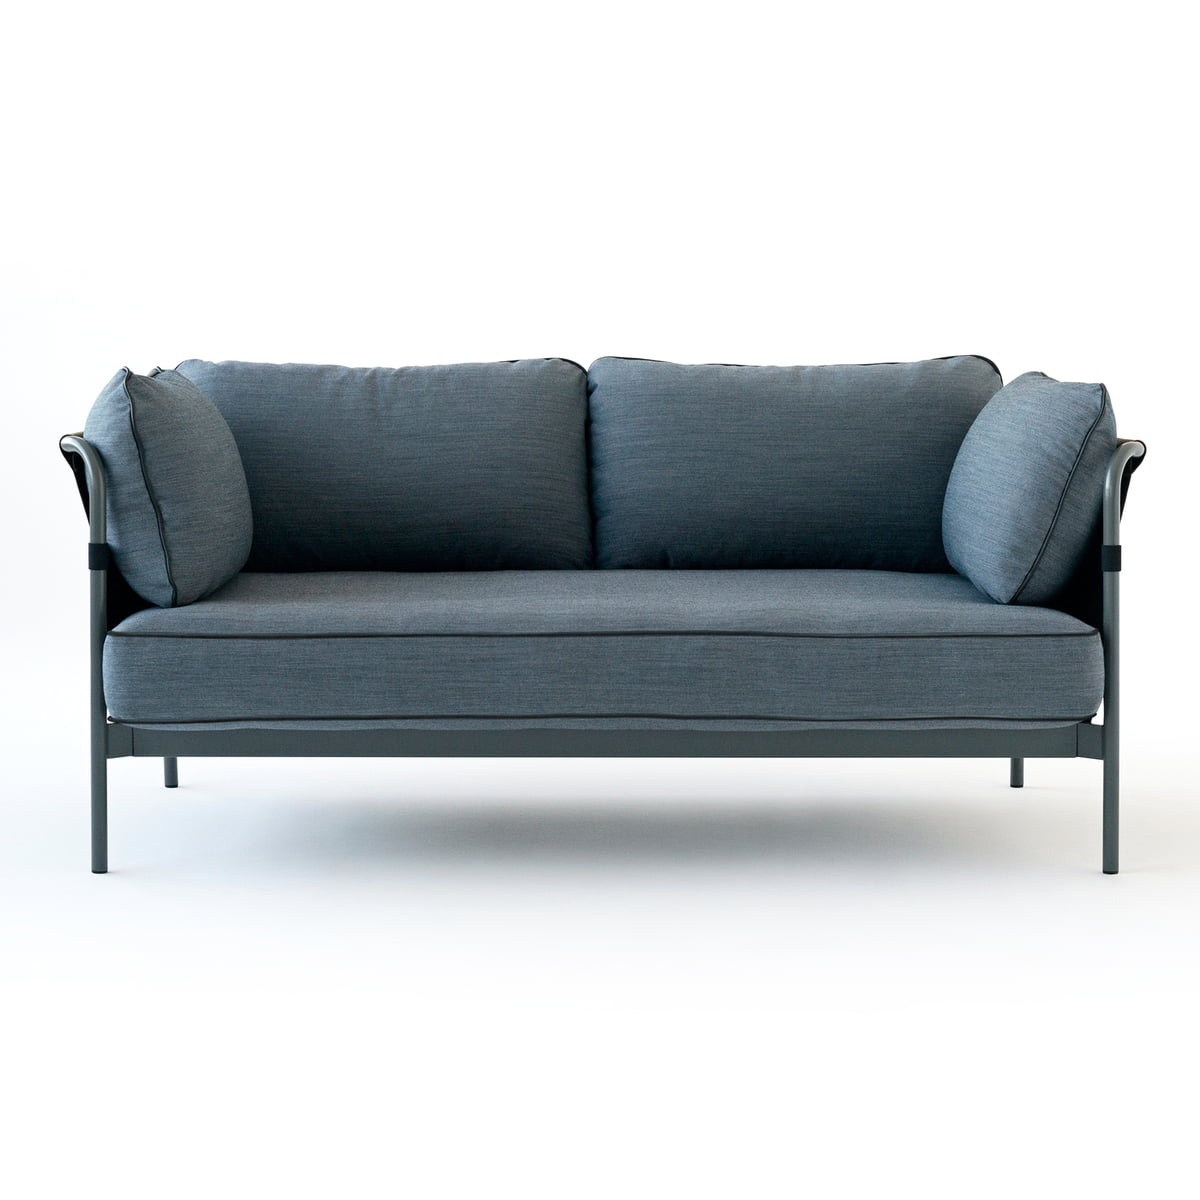 Can 2 seater sofa by hay in our interior design shop for Sofa 2 sitzer